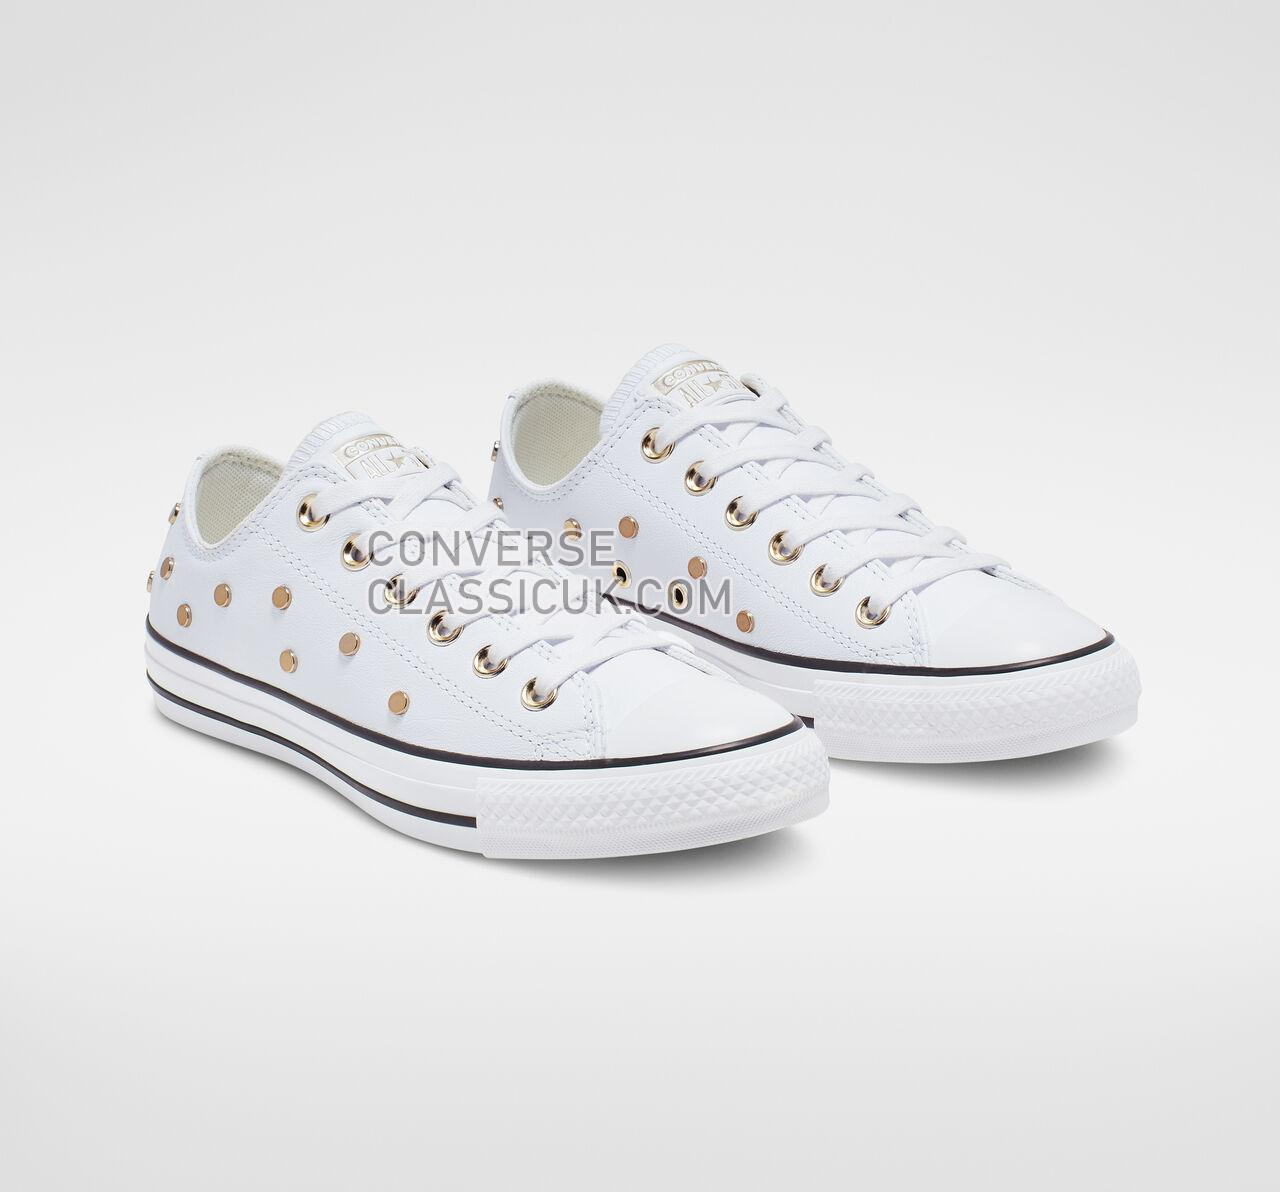 Converse Chuck Taylor All Star Studs Low Top Womens 565850C White/Light Gold/Black Shoes